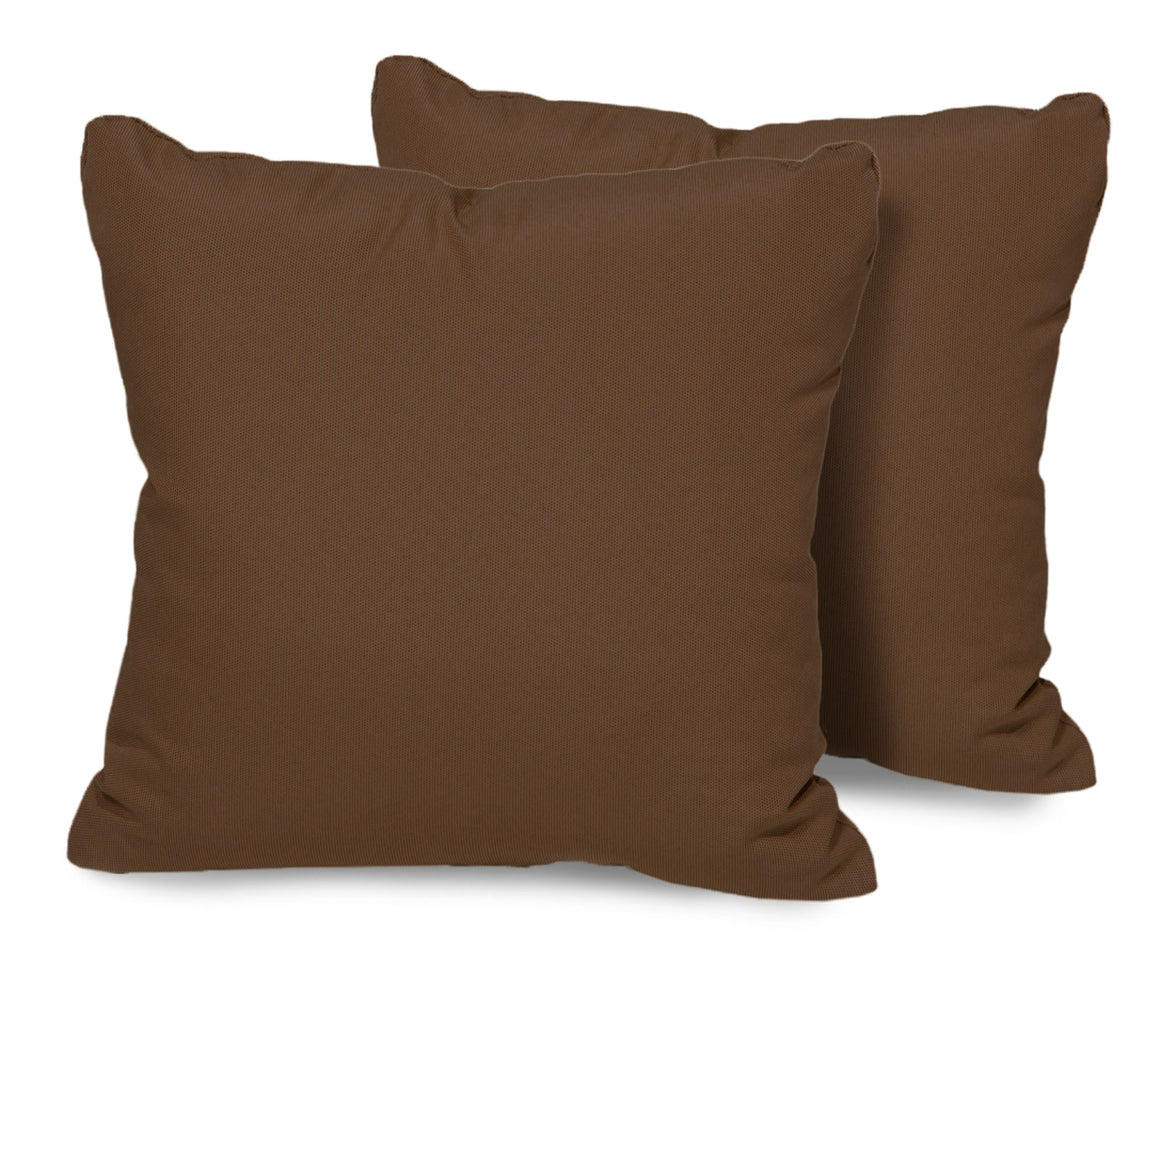 Cocoa Outdoor Throw Pillows Square Set of 2 , TK Classics- grayburd